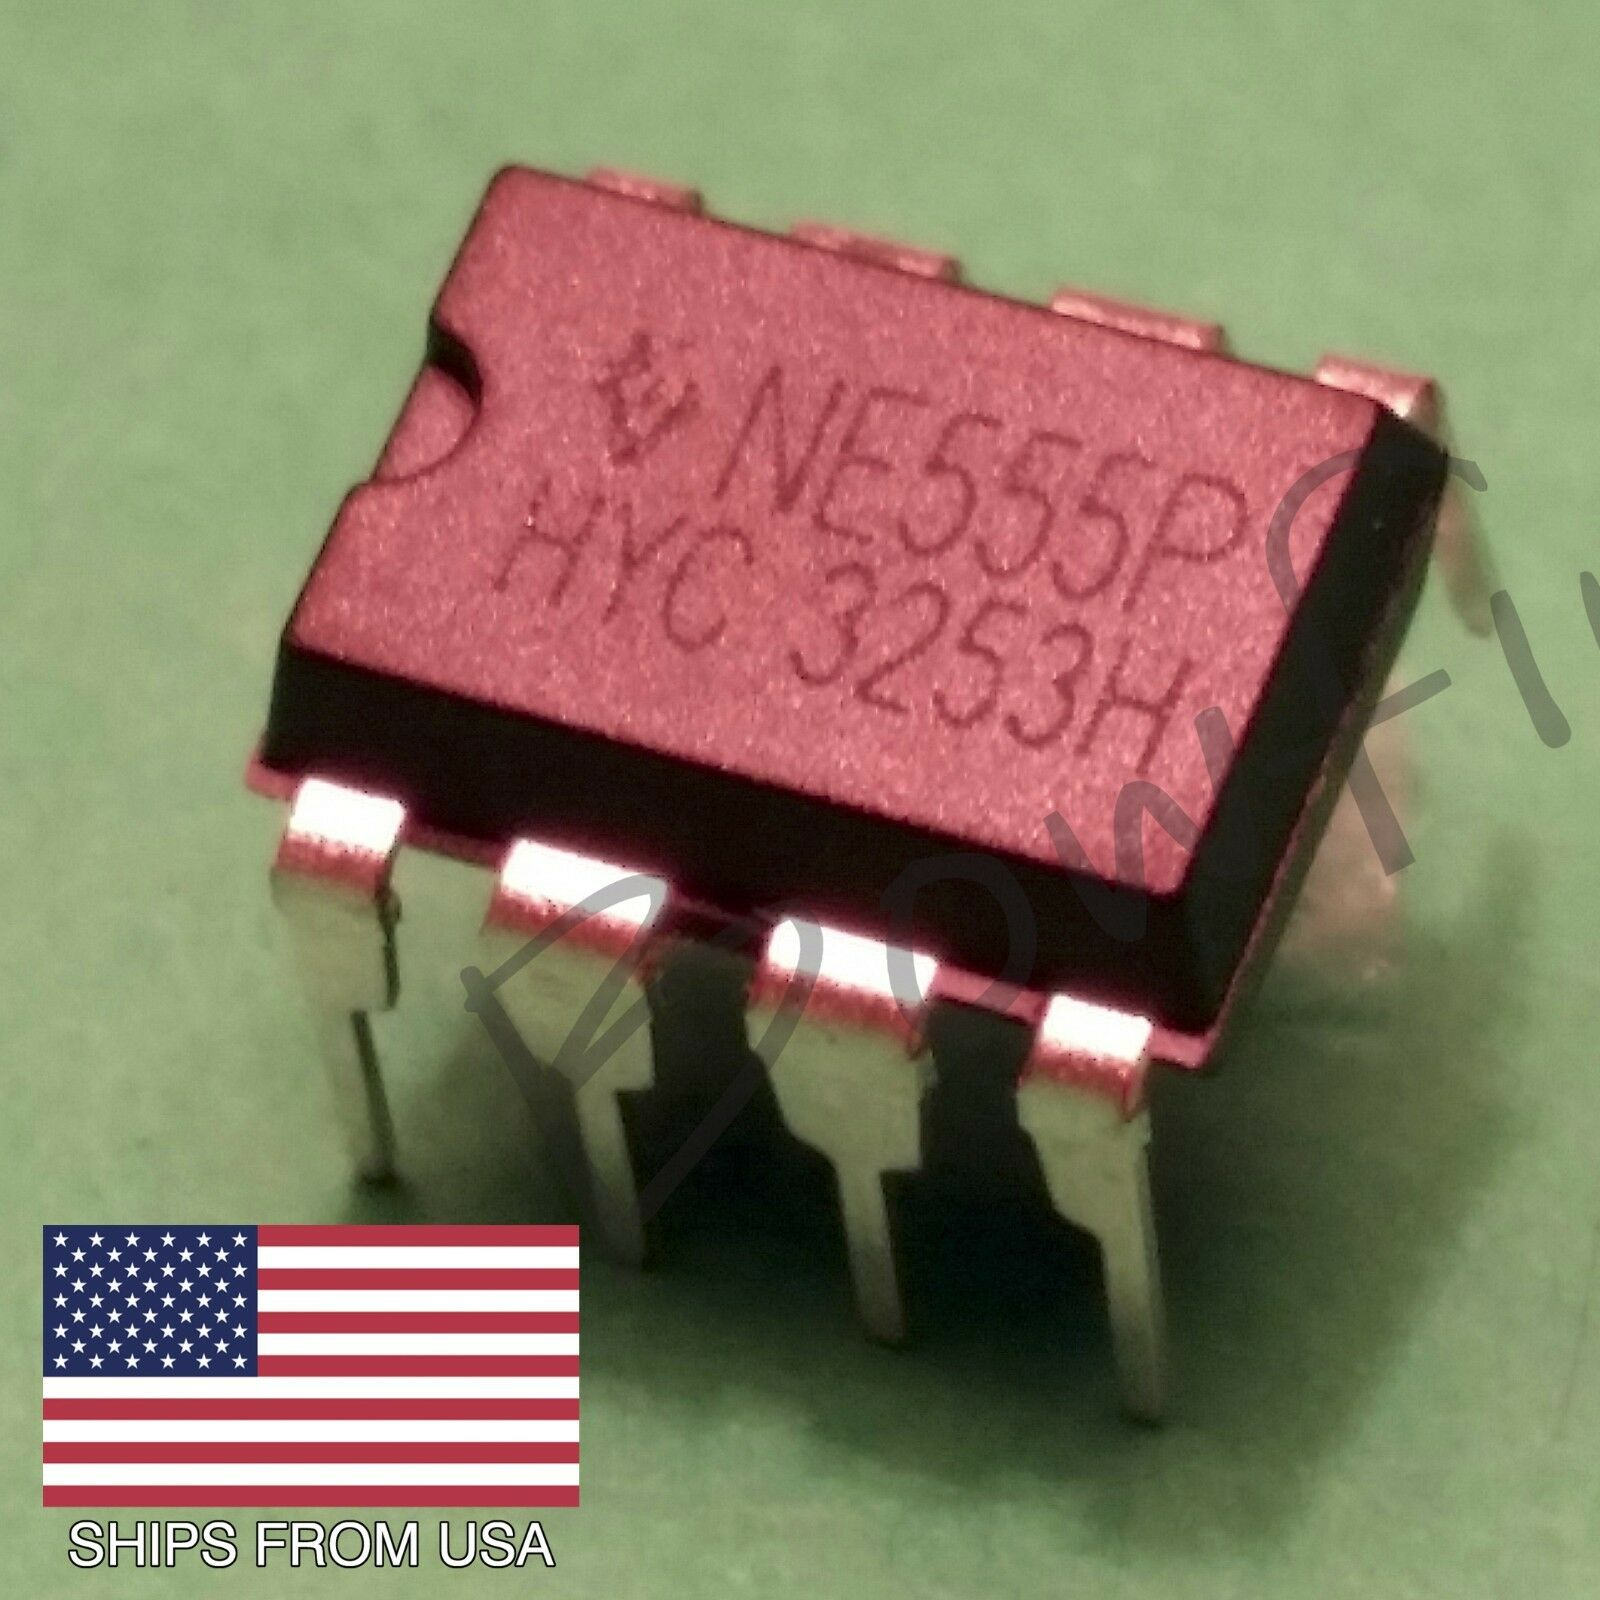 10 Pack Ne555p Timer Dip 8 Ne555 Usa Seller Free Shipping 1000pcs Lm358 Sop8 Integrated Circuit Operational Amplifier Ic 1 Of 1only 0 Available